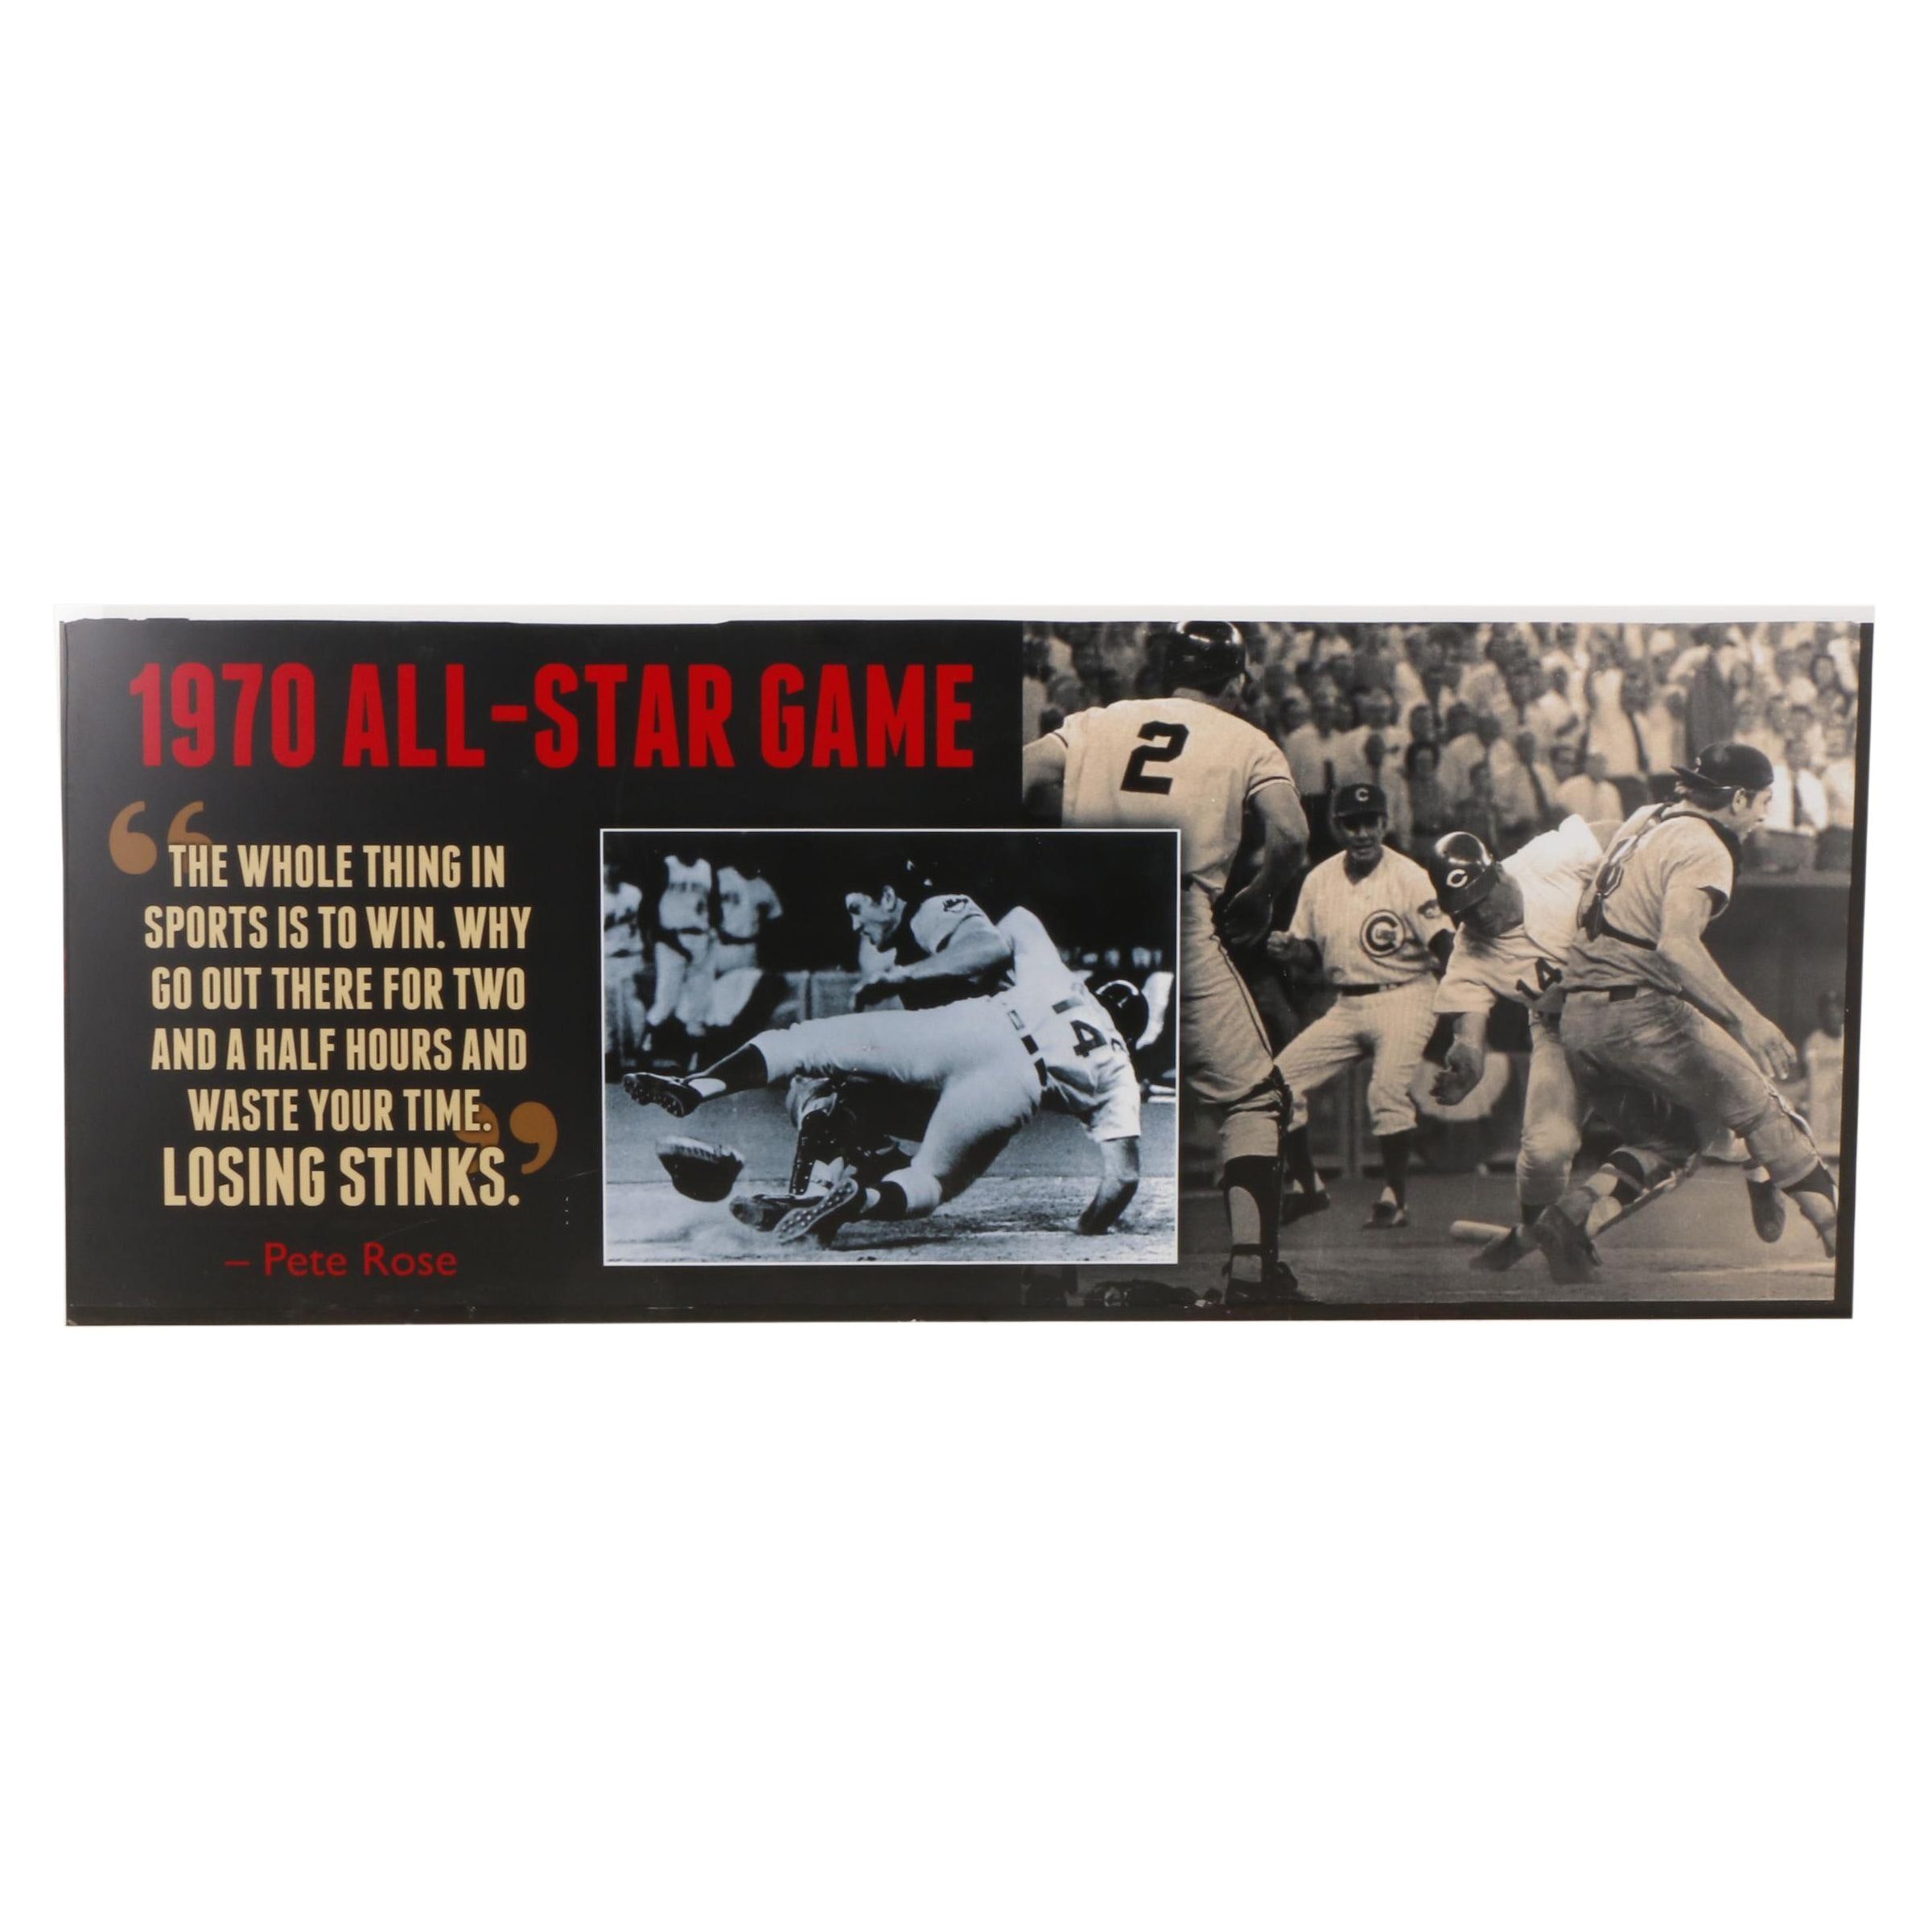 Large 1970s All-Star Game Sign With Pete Rose/Ray Fosse Collision and Quote